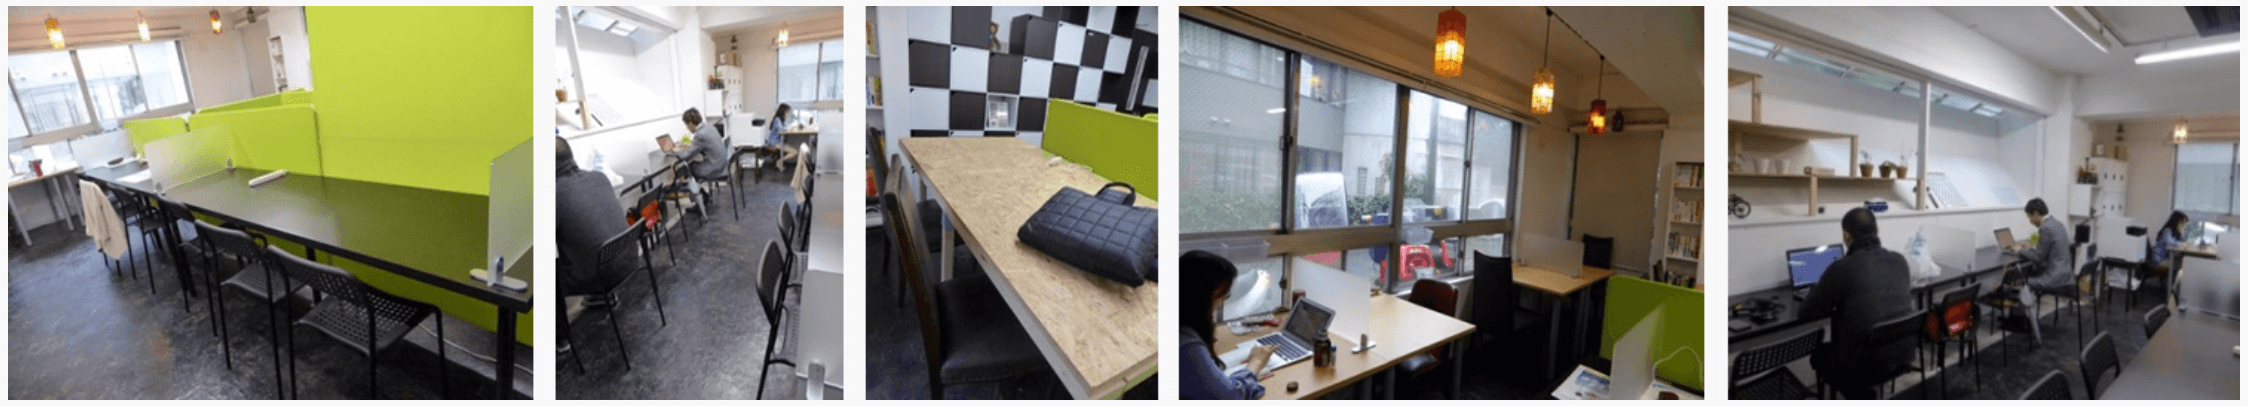 FROH COWORKING(フローコワーキング)